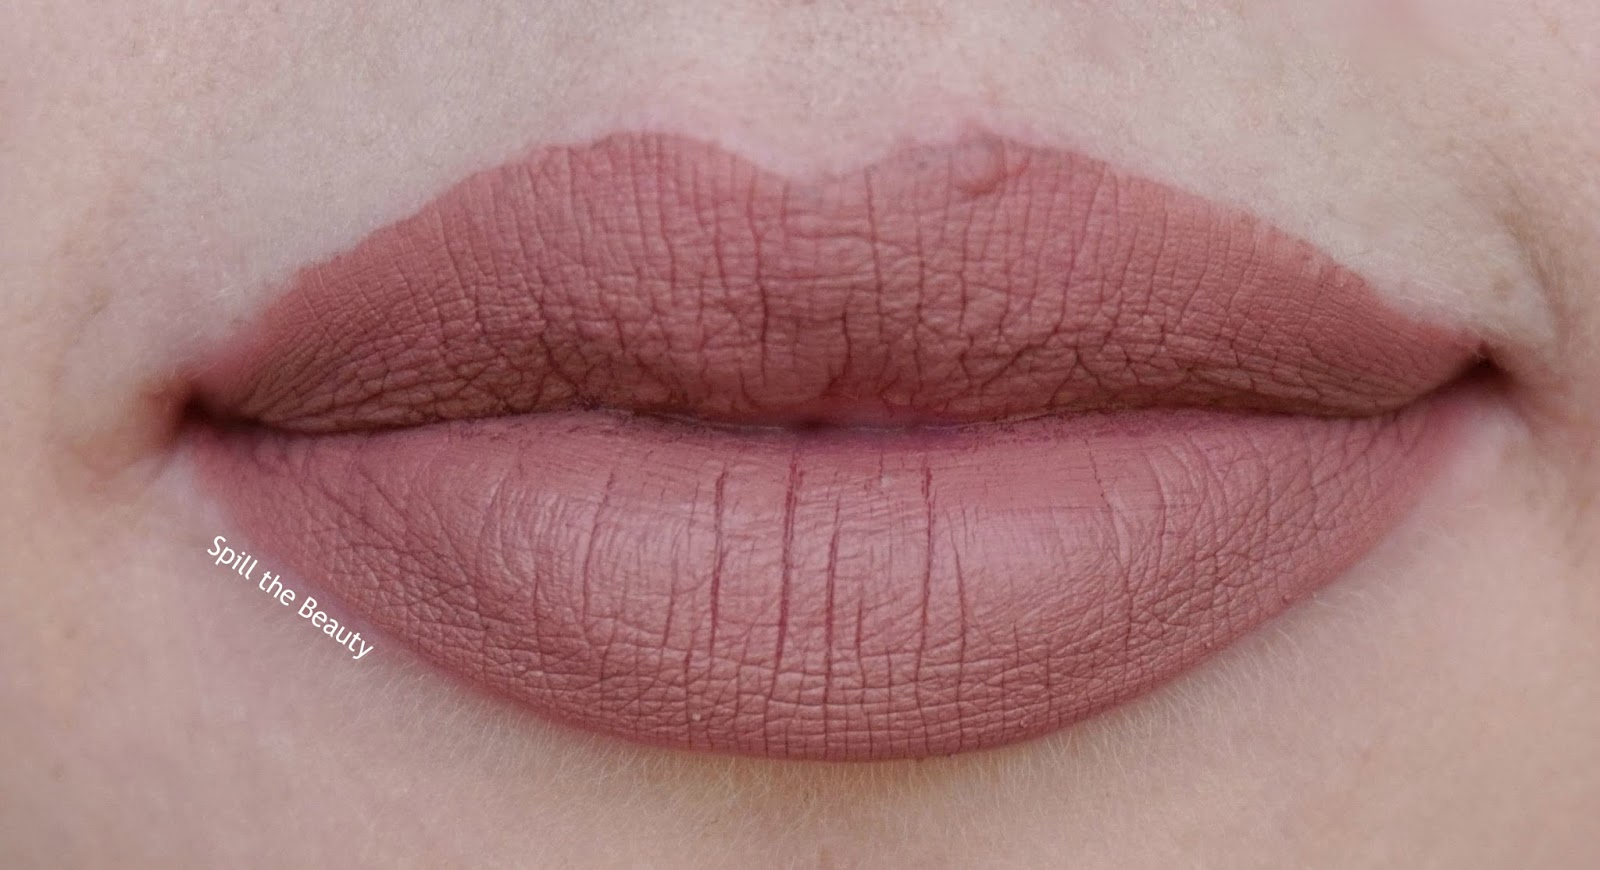 cool girl - lips too faced melted mattes review swatch